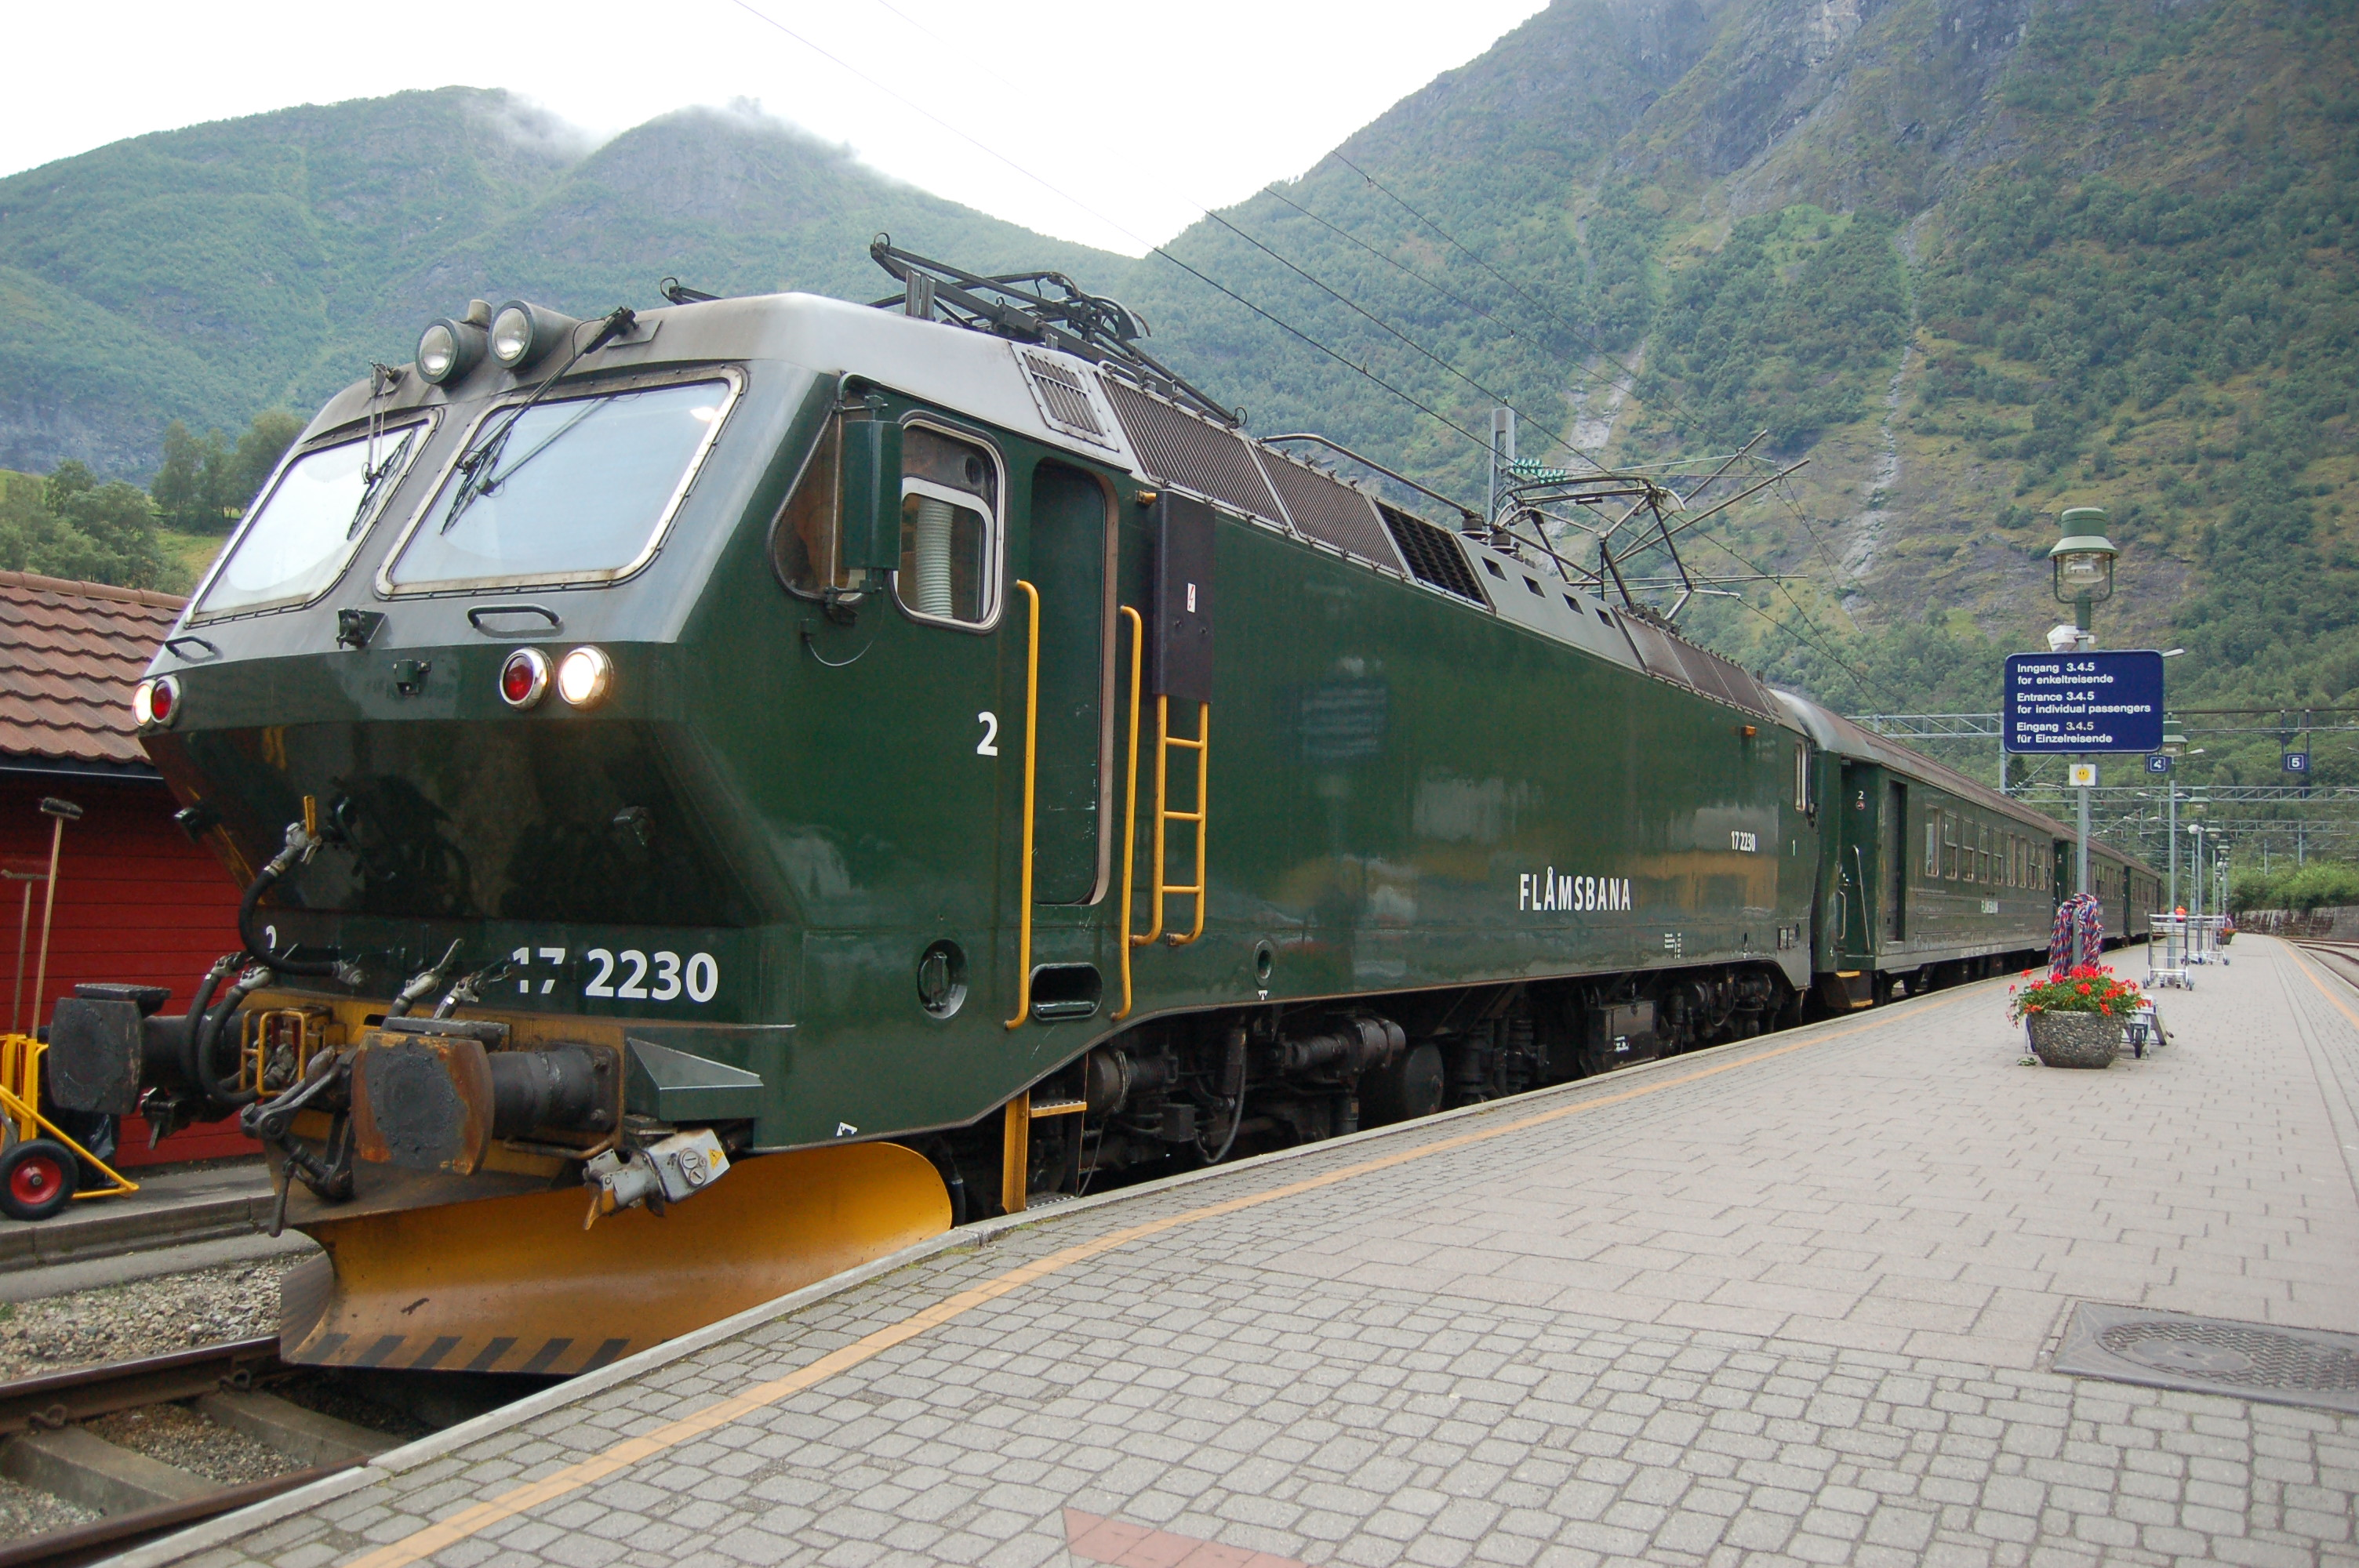 nsb el 17 2230 on fl m line in the line s green livery